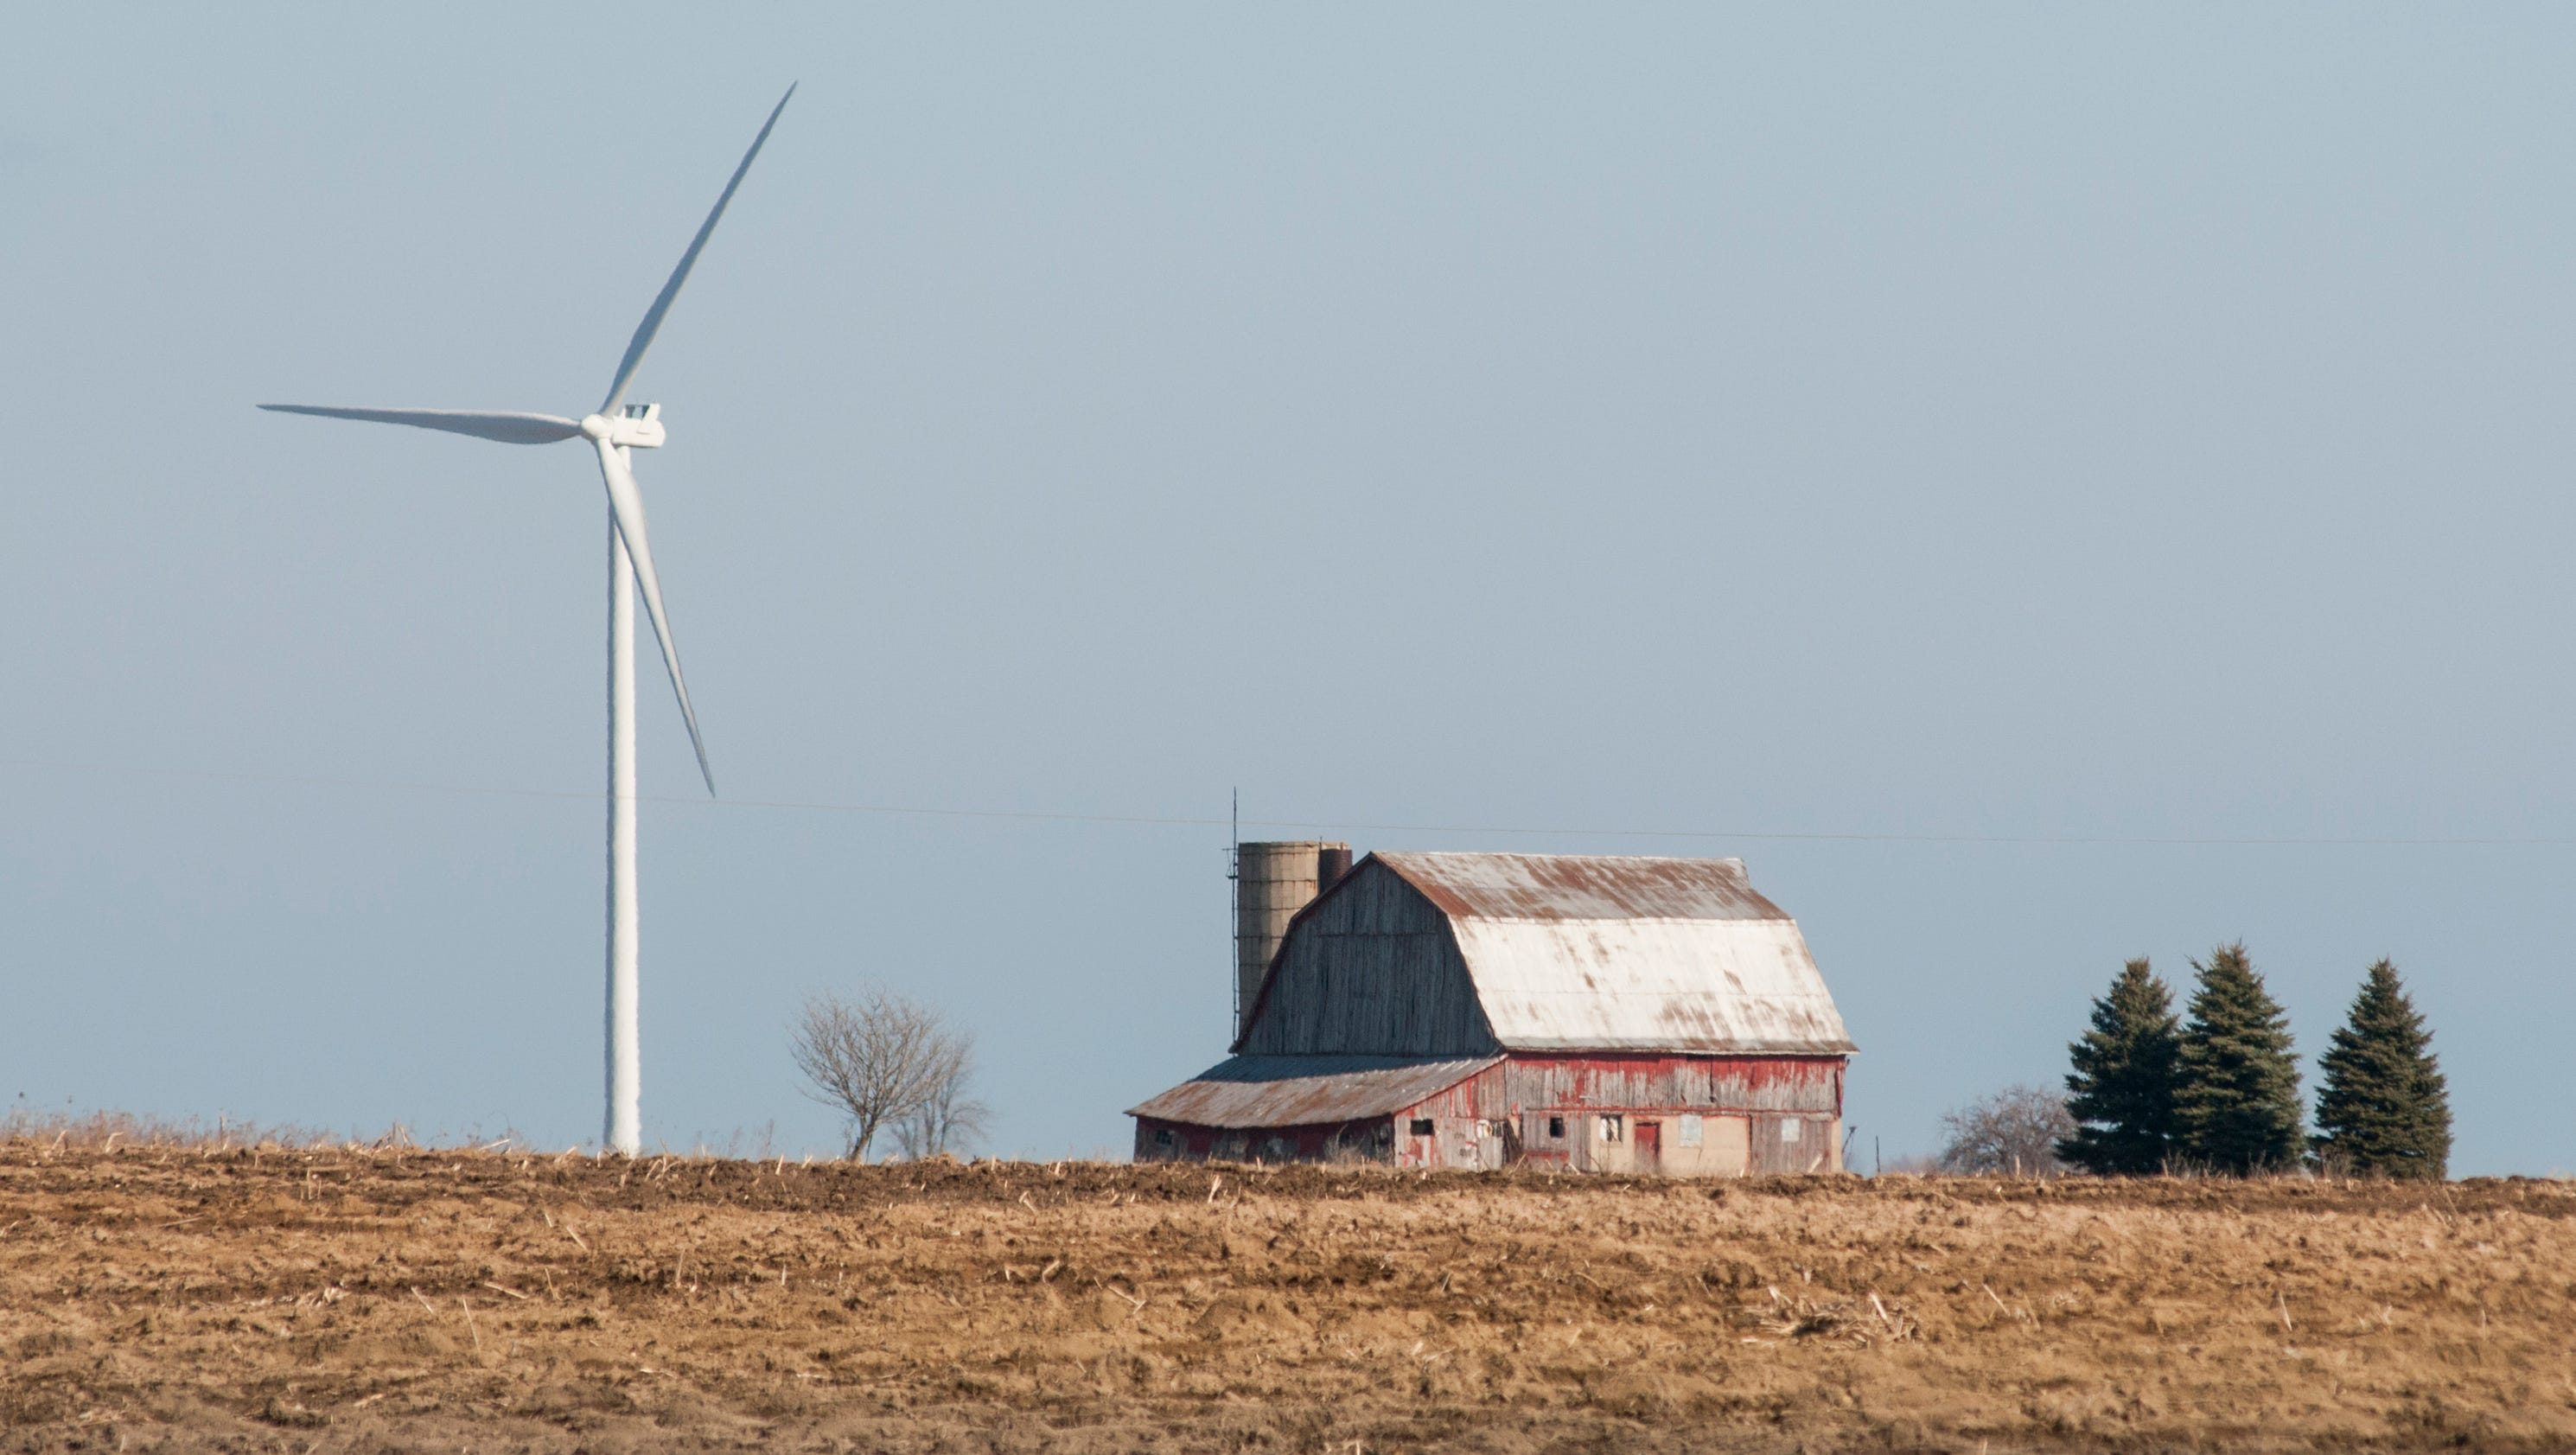 Marlette Twp votes on wind farm rules